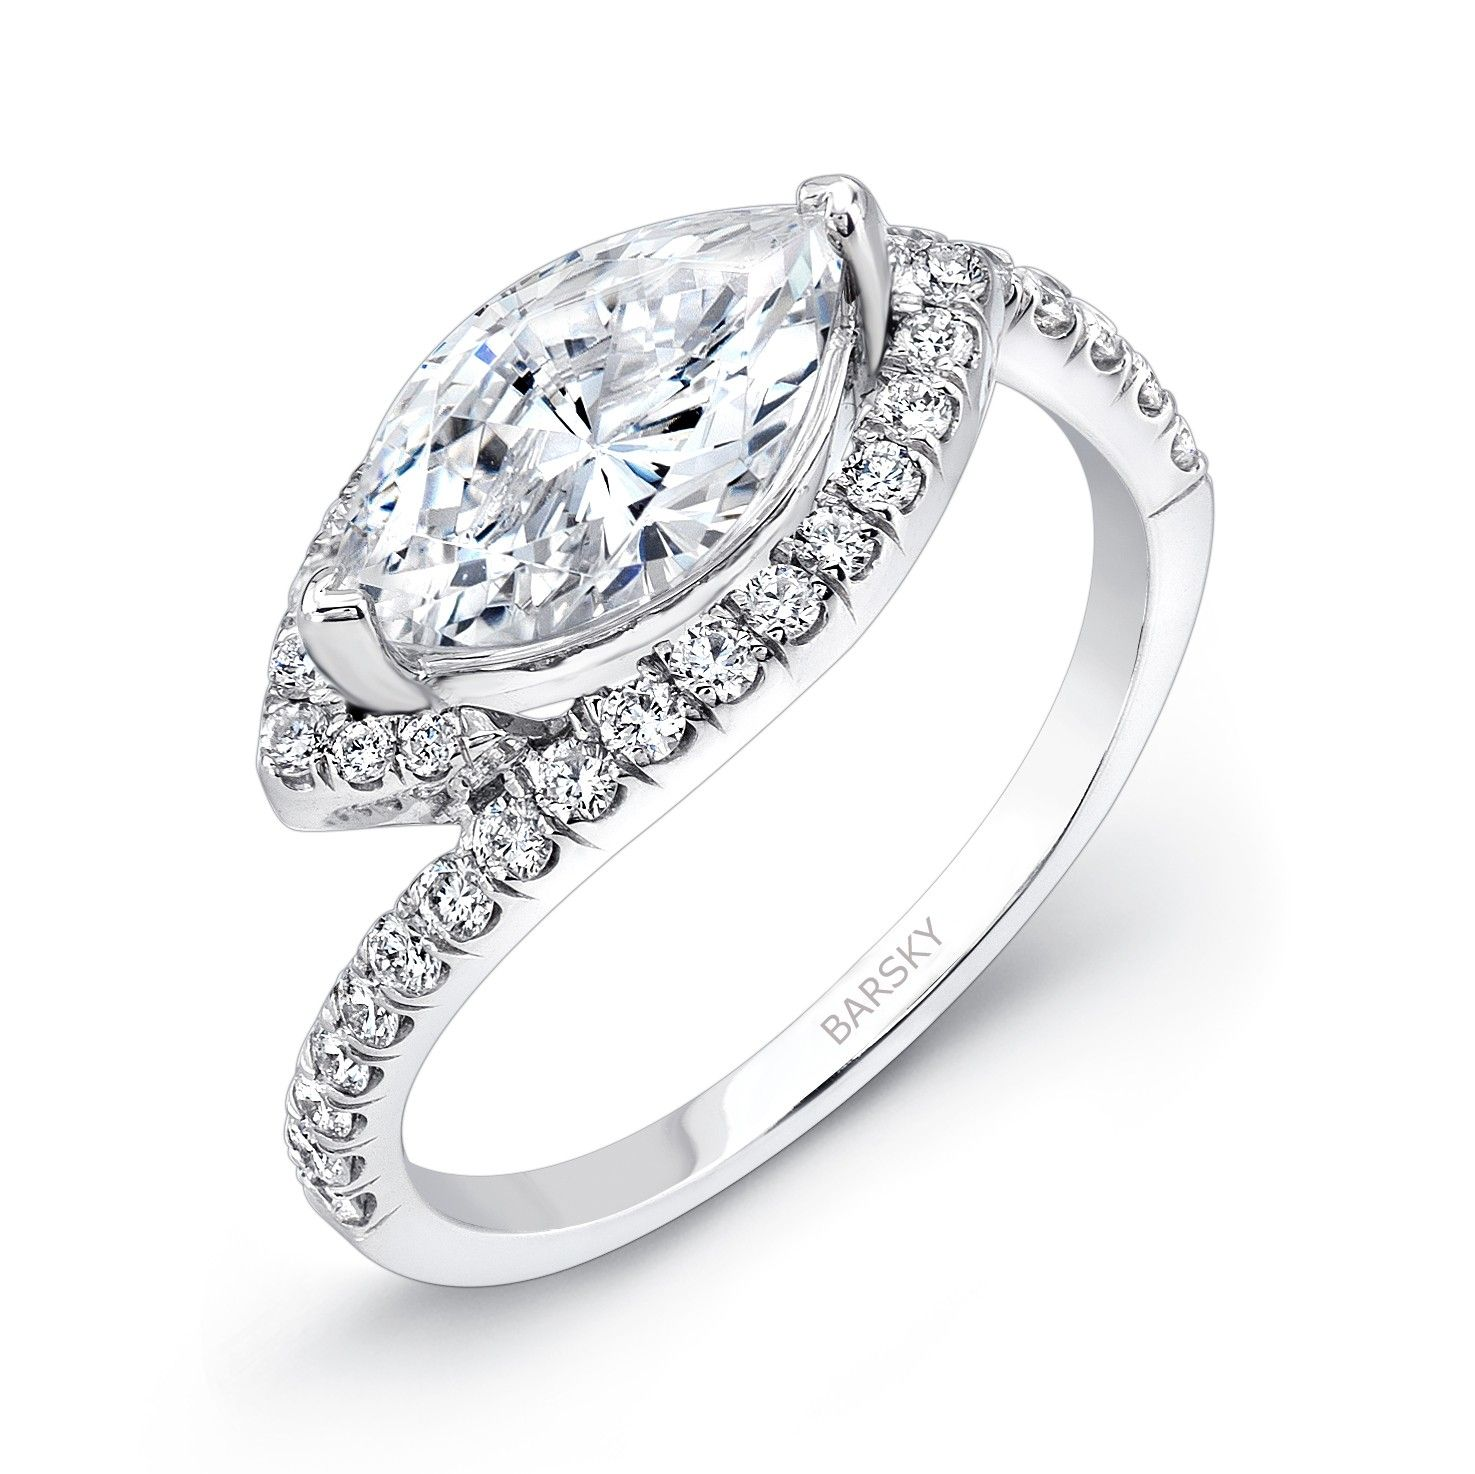 settings download size bands platinum beautiful jewellery ring stone wedding unique three diamond rings full